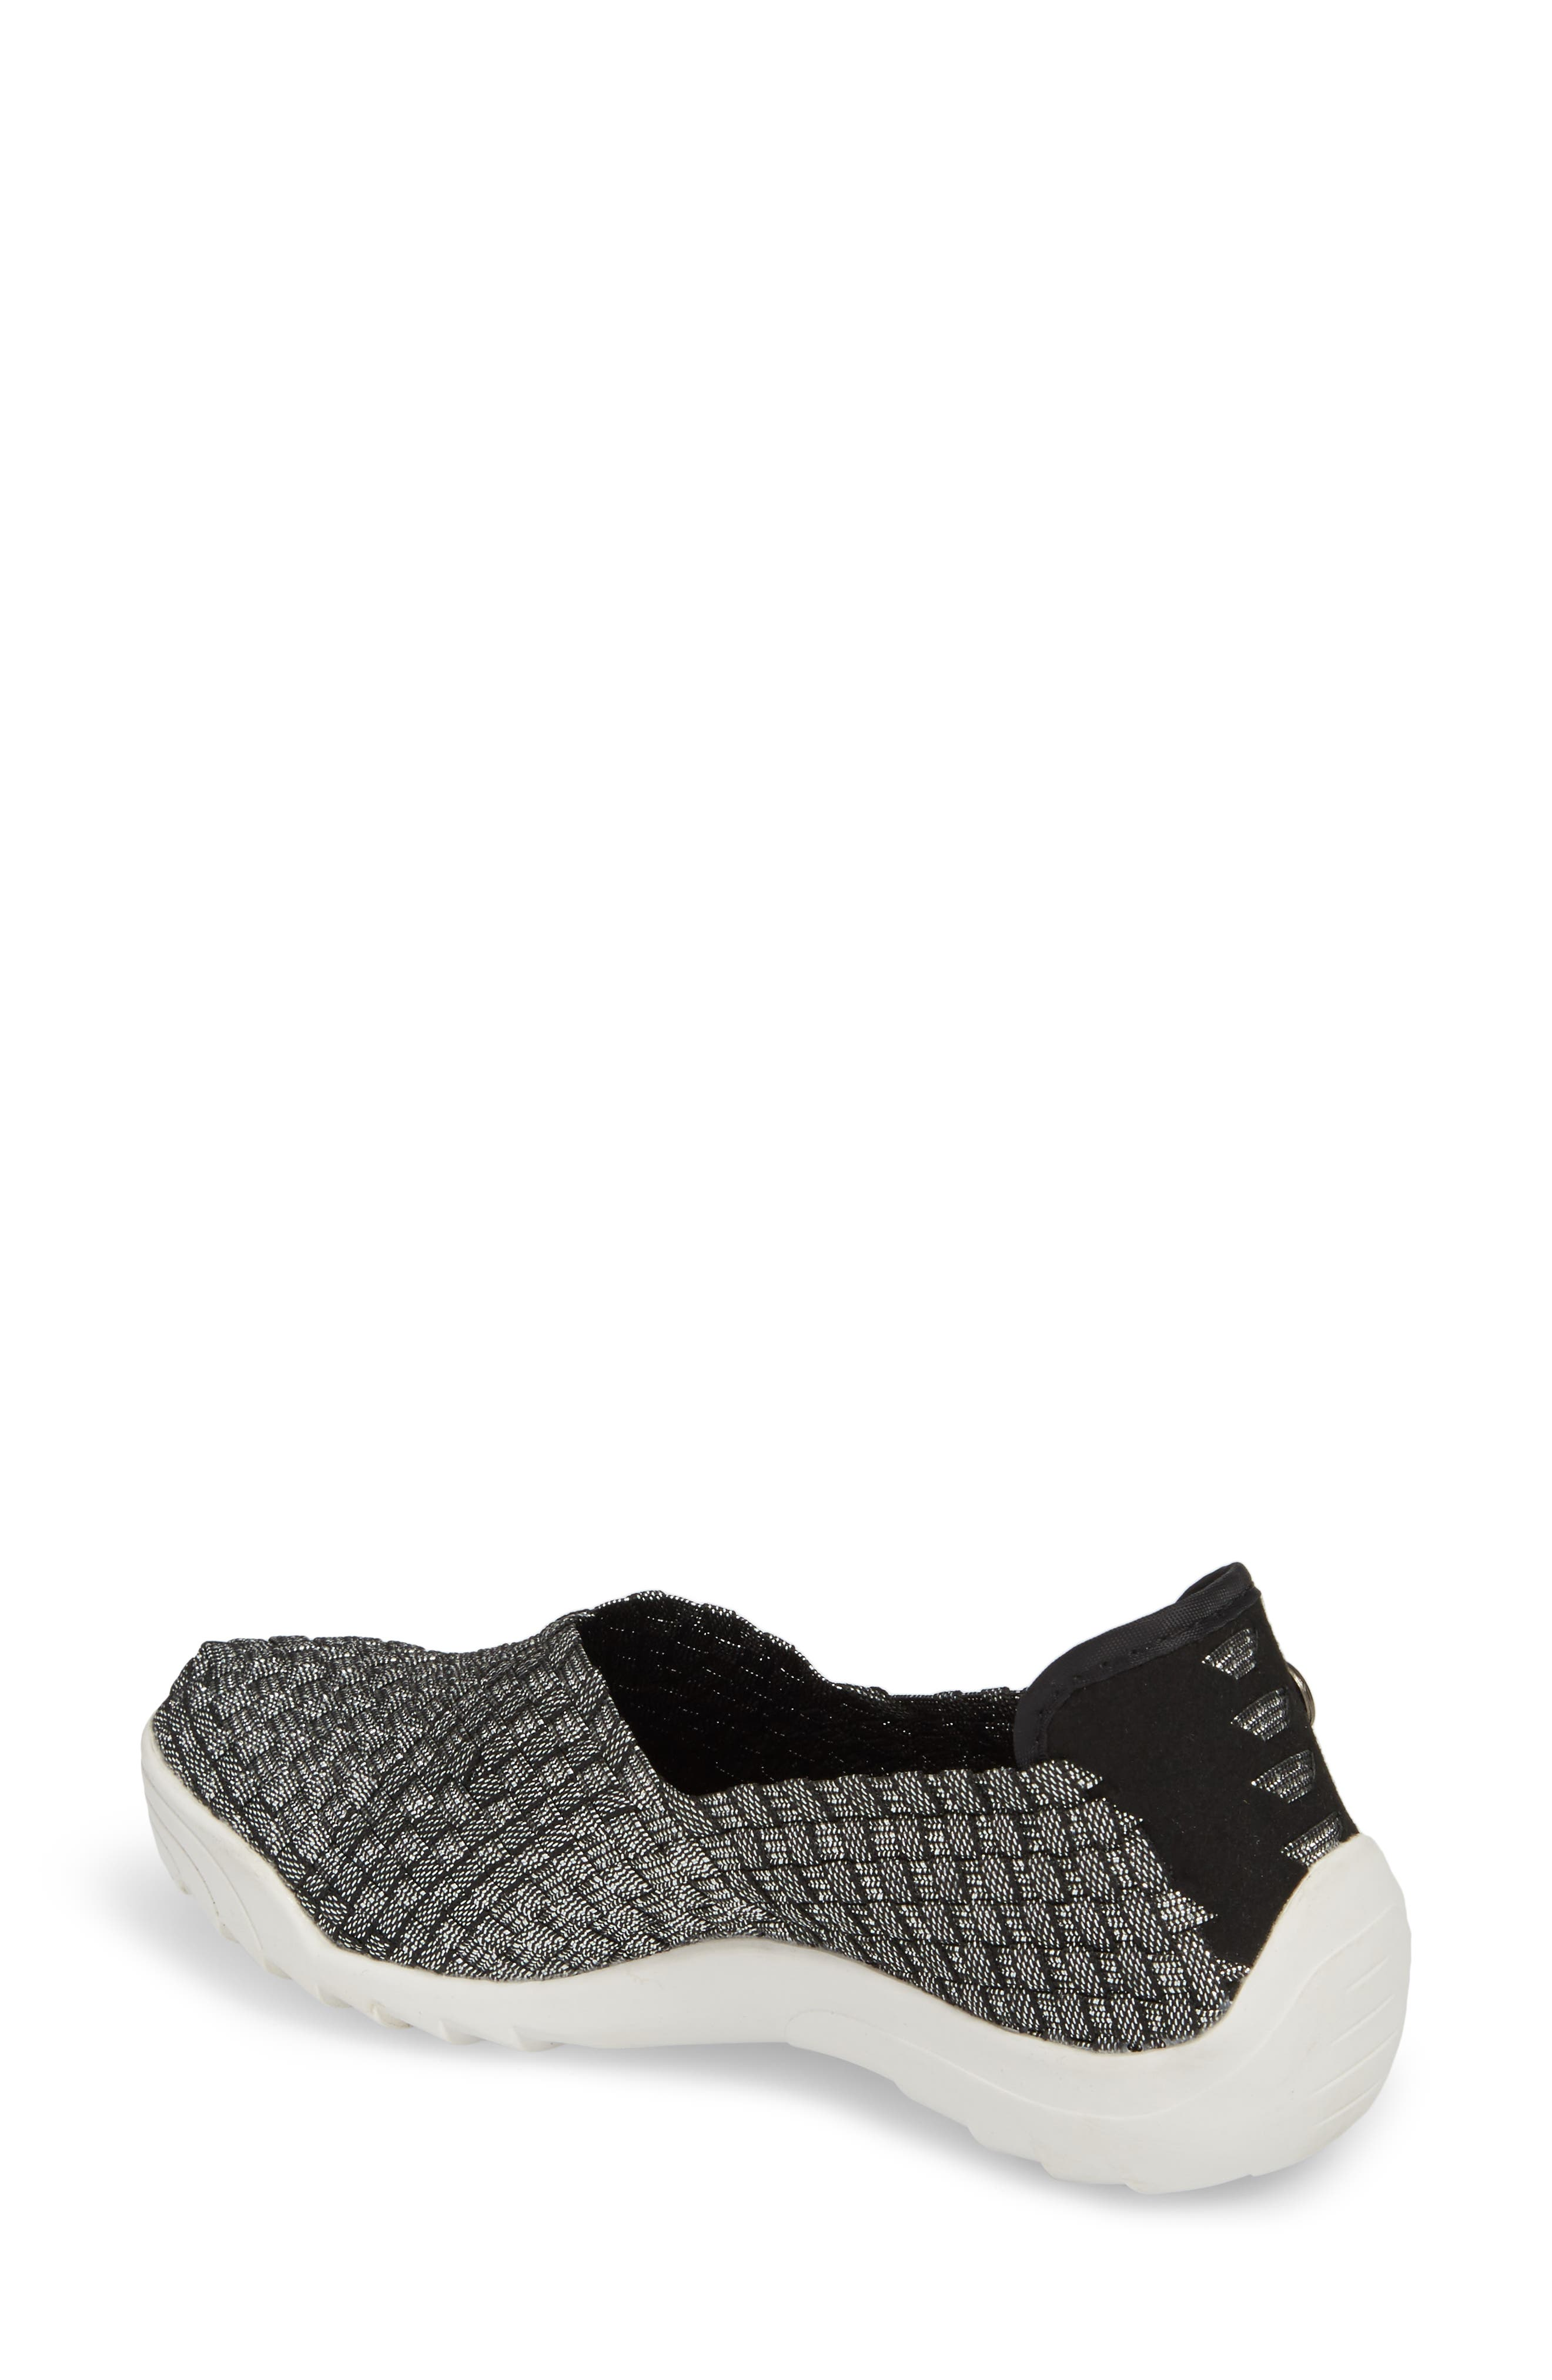 Rigged Fly Slip-On Sneaker,                             Alternate thumbnail 2, color,                             BLACK SHIMMER